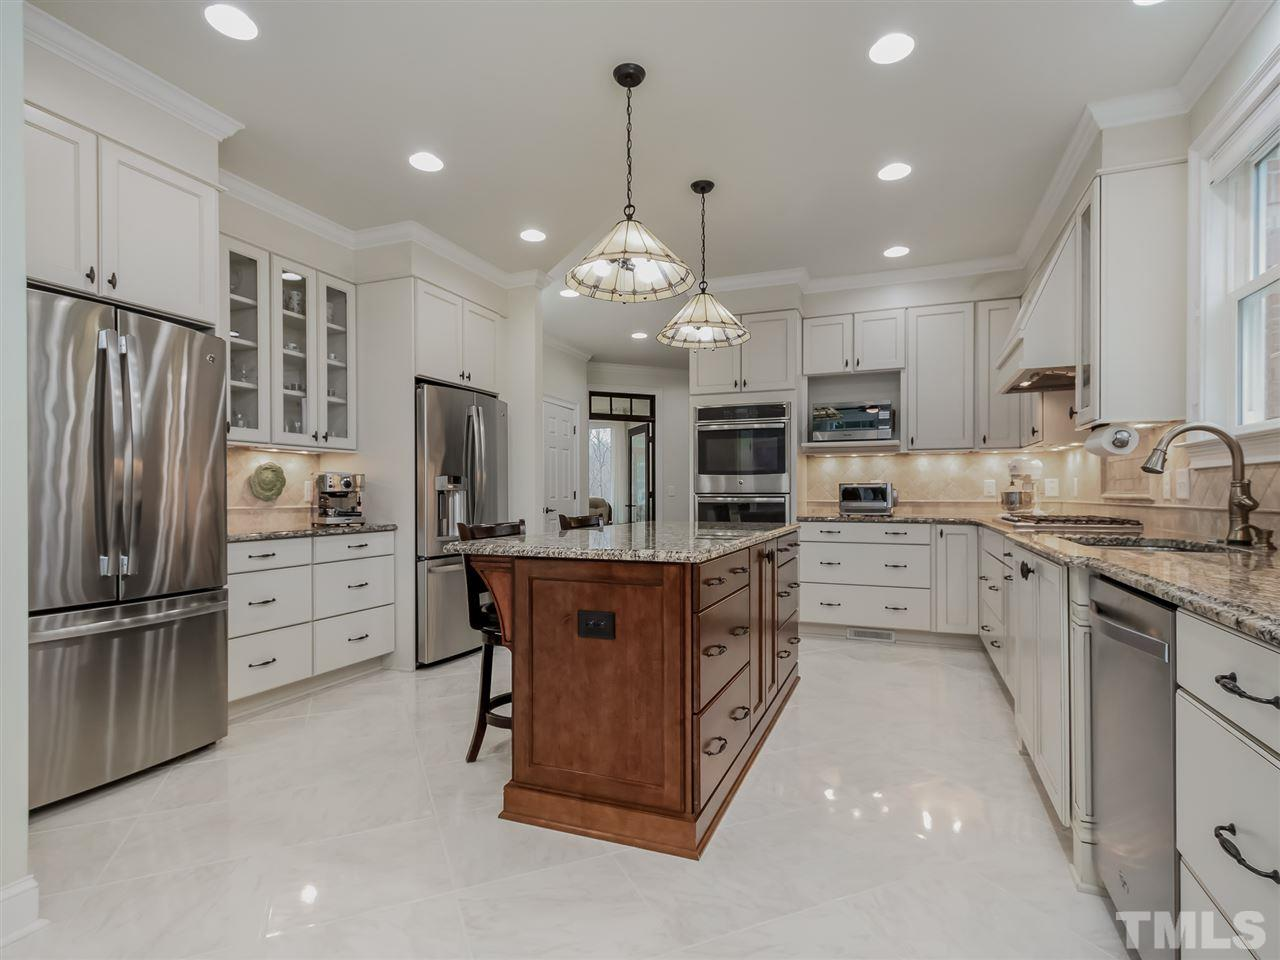 Immaculate Kitchen with SS Appliances, Double Oven, Two Refrigerators, Under Cabinet Lighting, and Center Island.